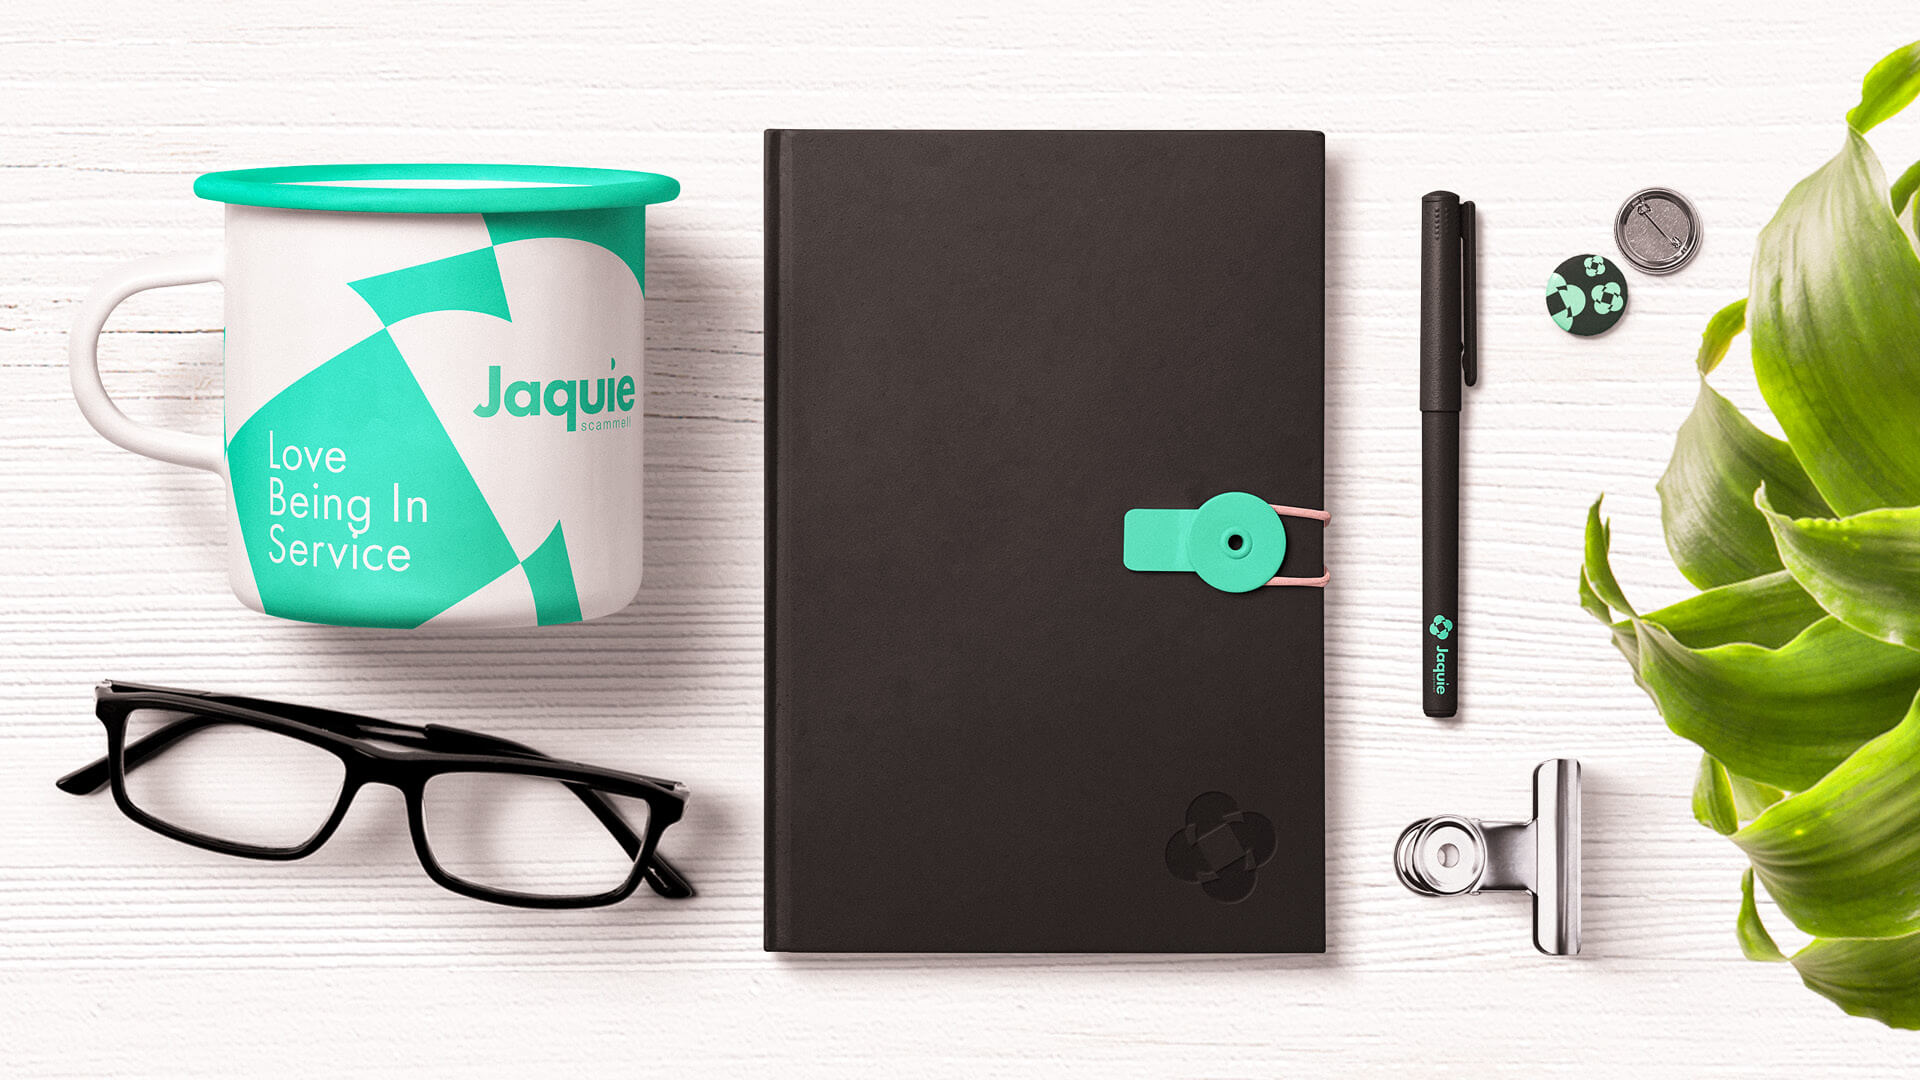 Jaquie Scammell Branding 2019 – Branded Items